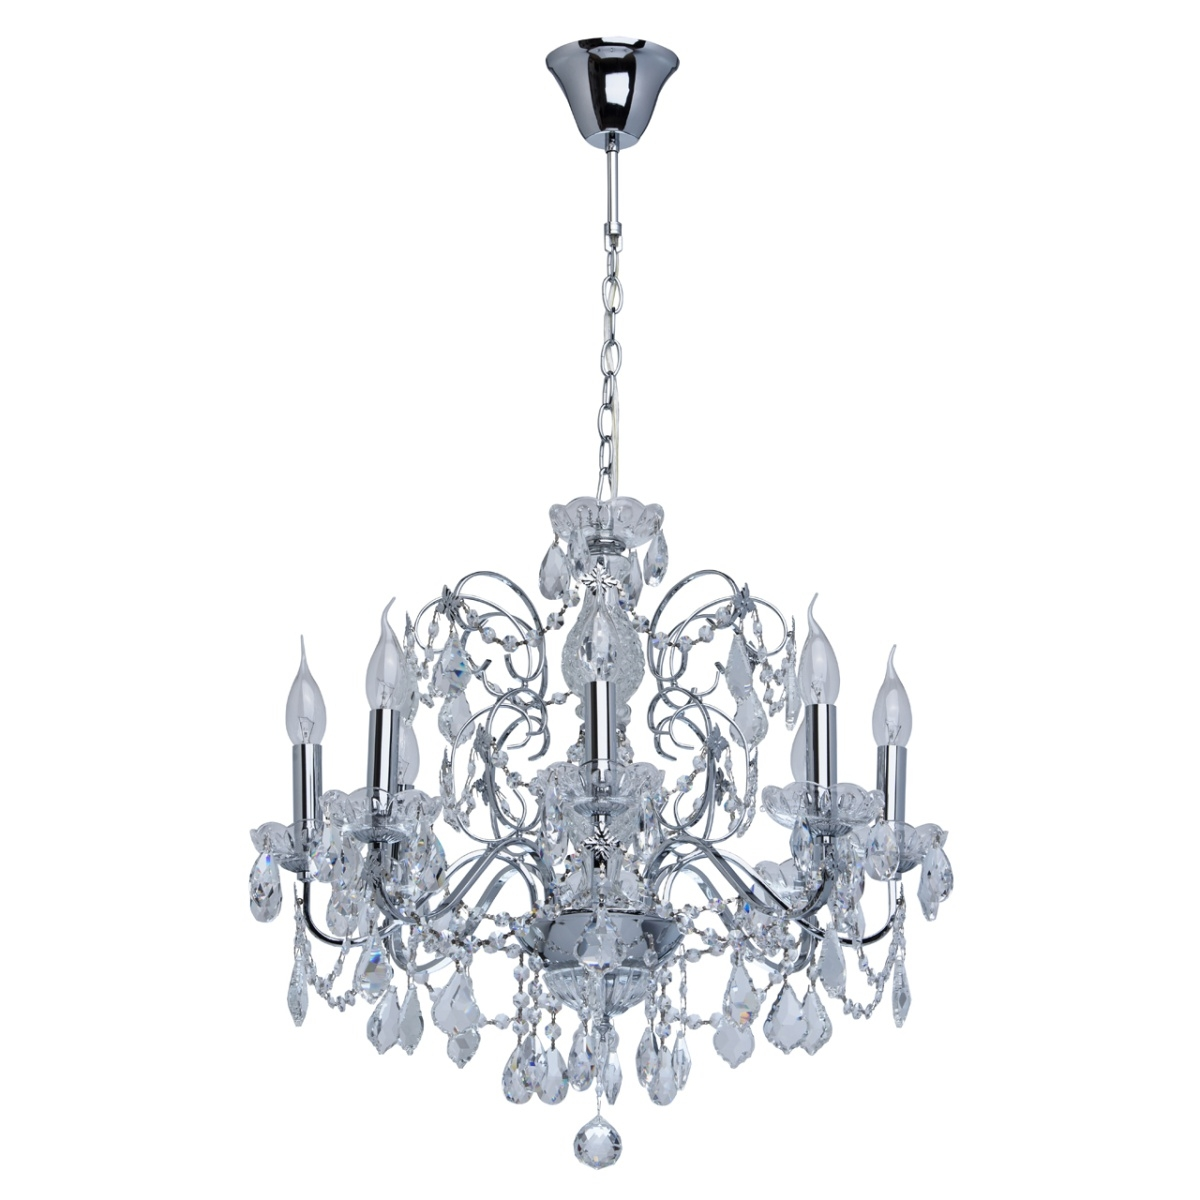 Candelabru MW-Light Crystal 367013408 imagine